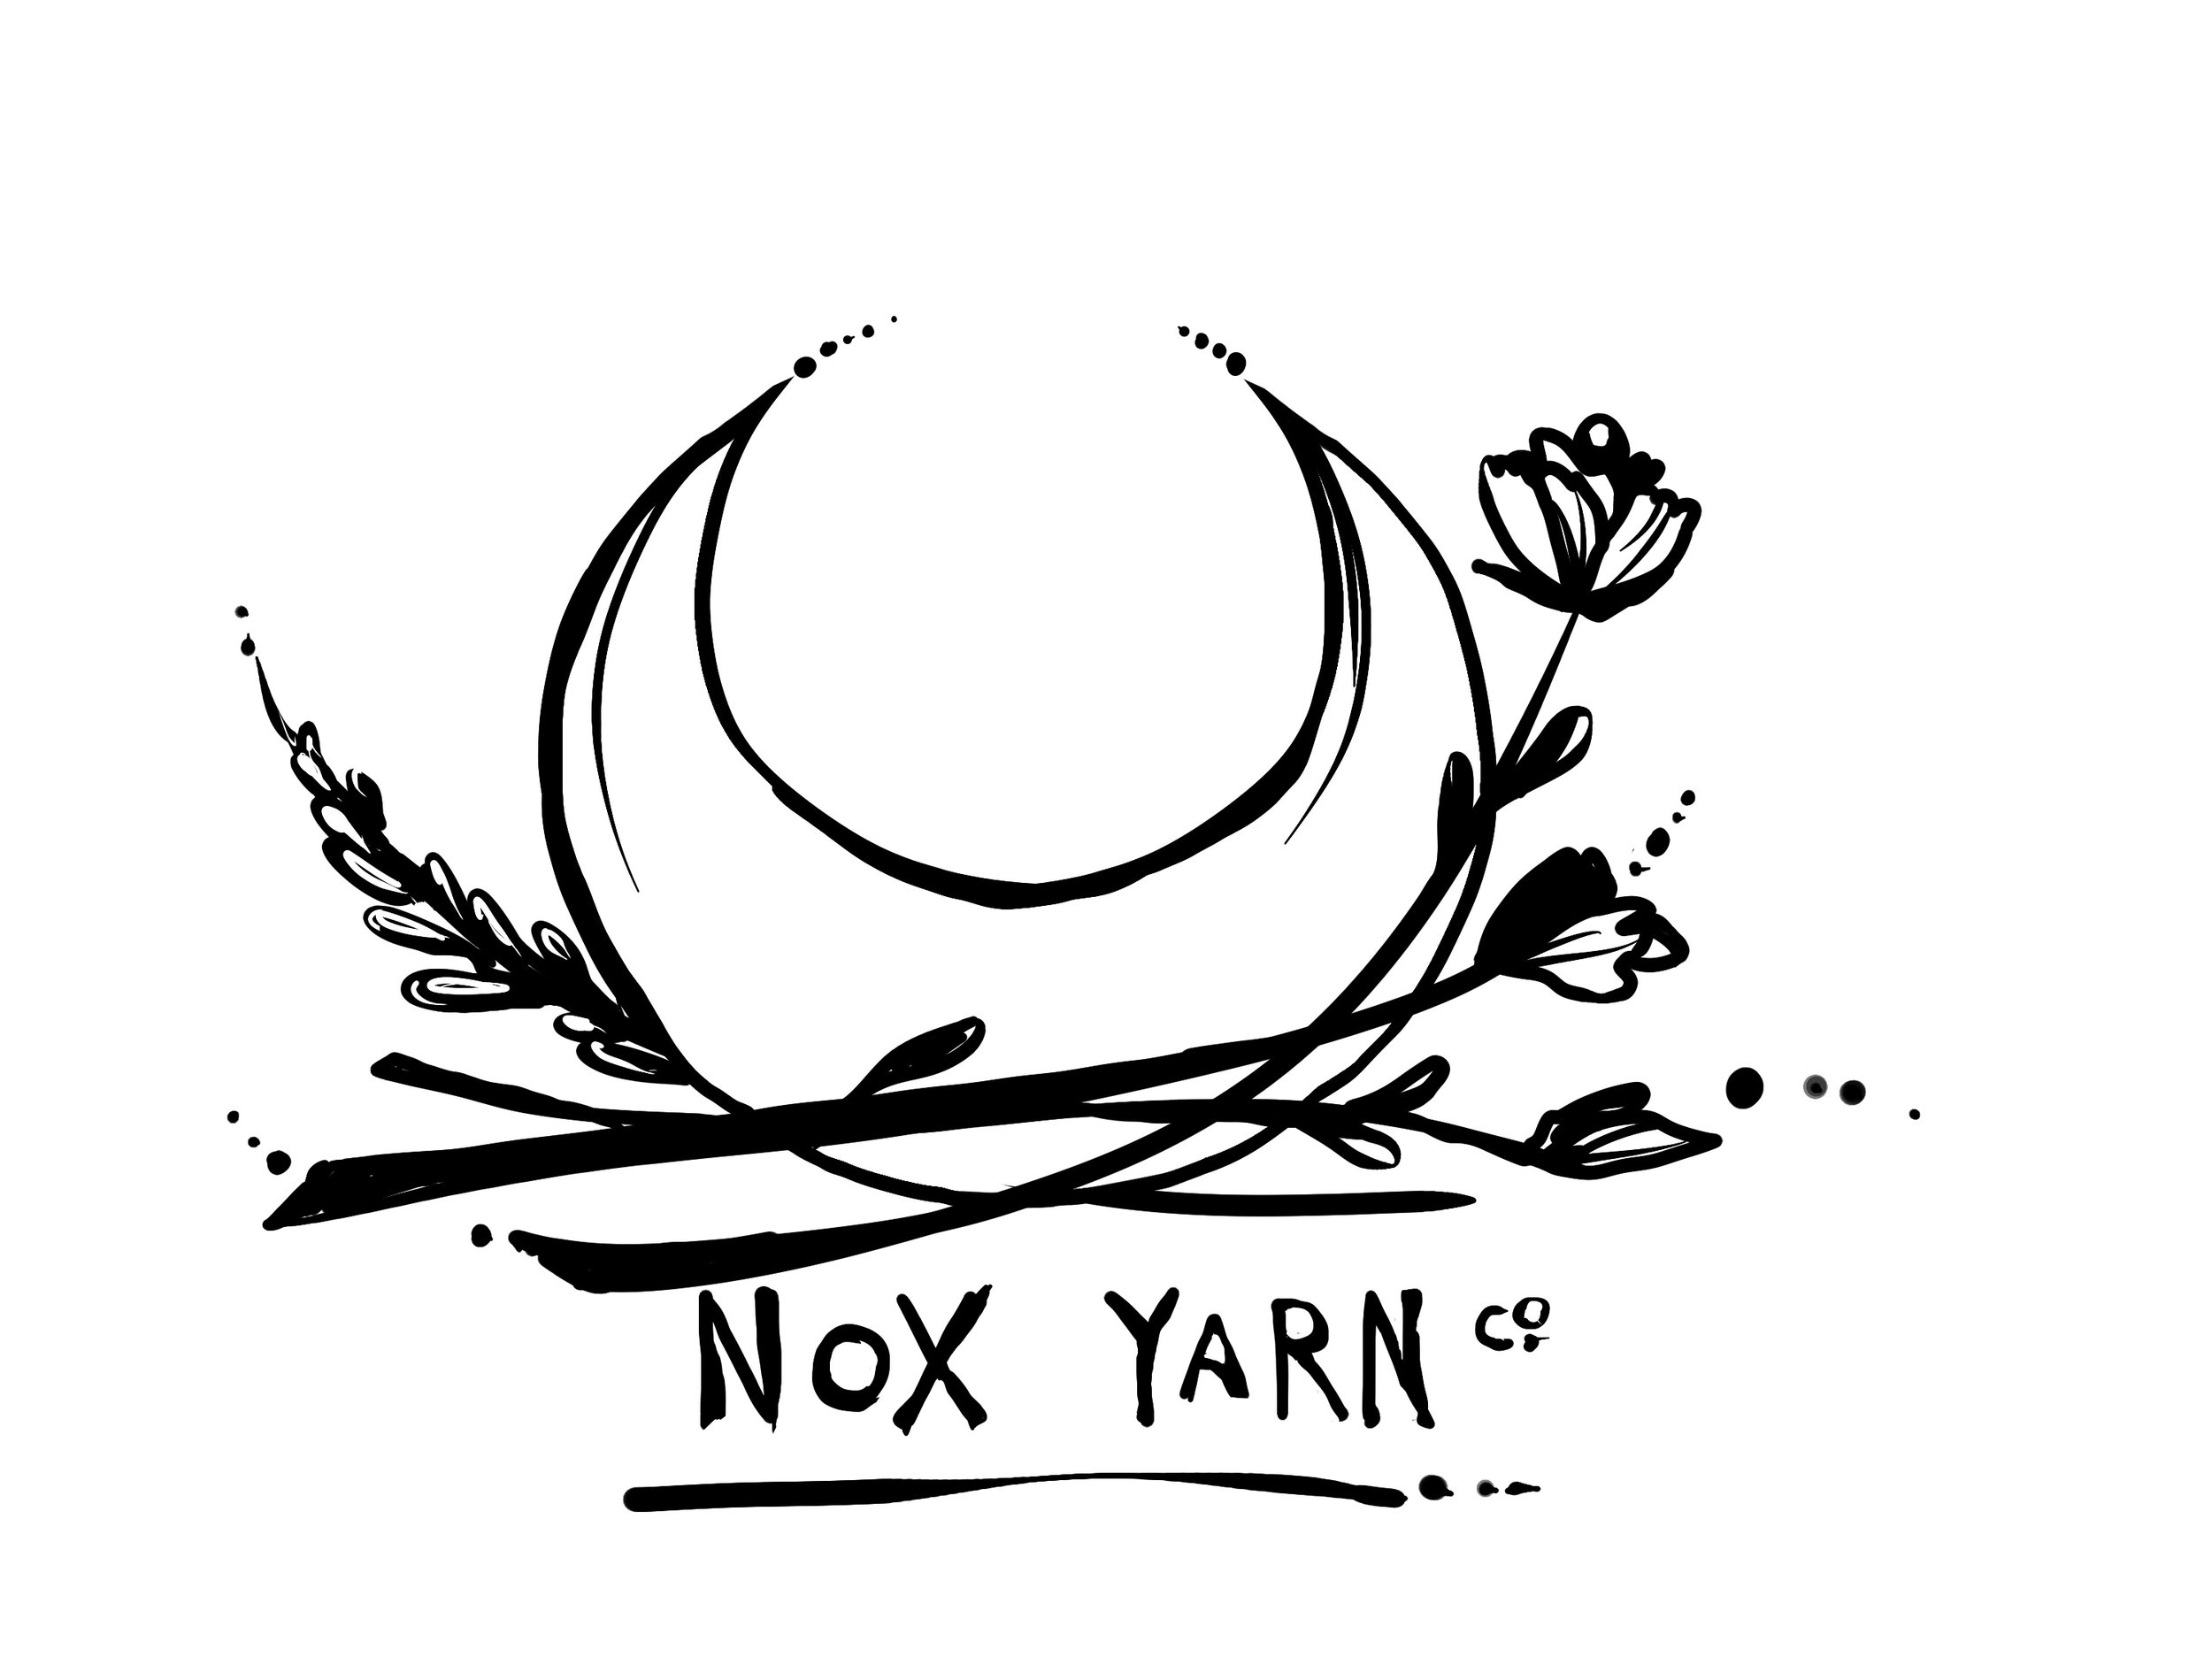 nox yarn co logo copy.jpg